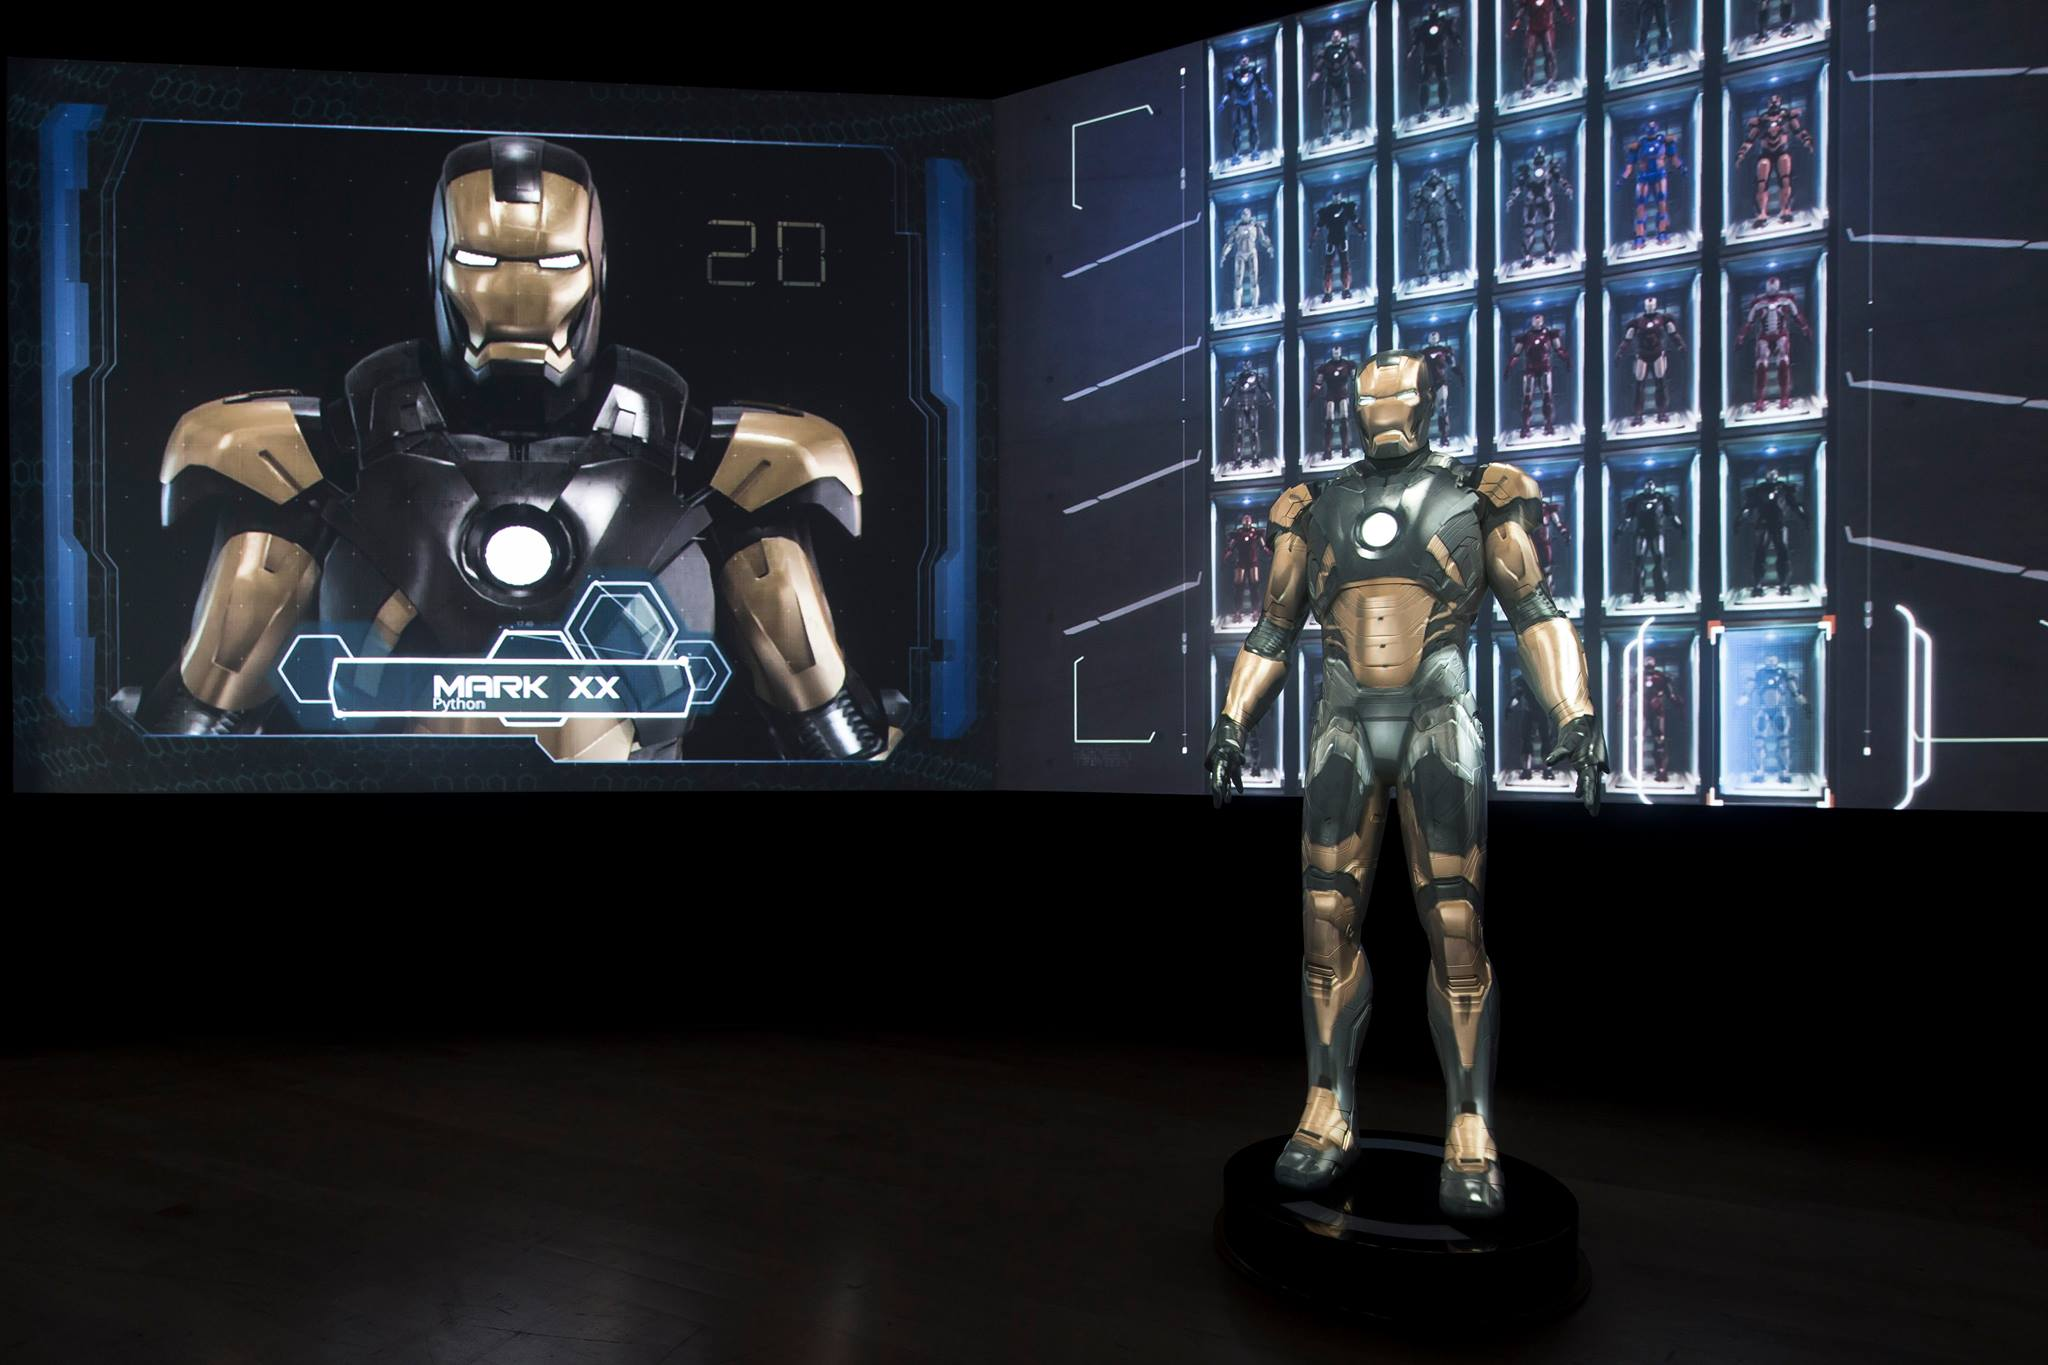 42 Iron Man suits projected in 3D.